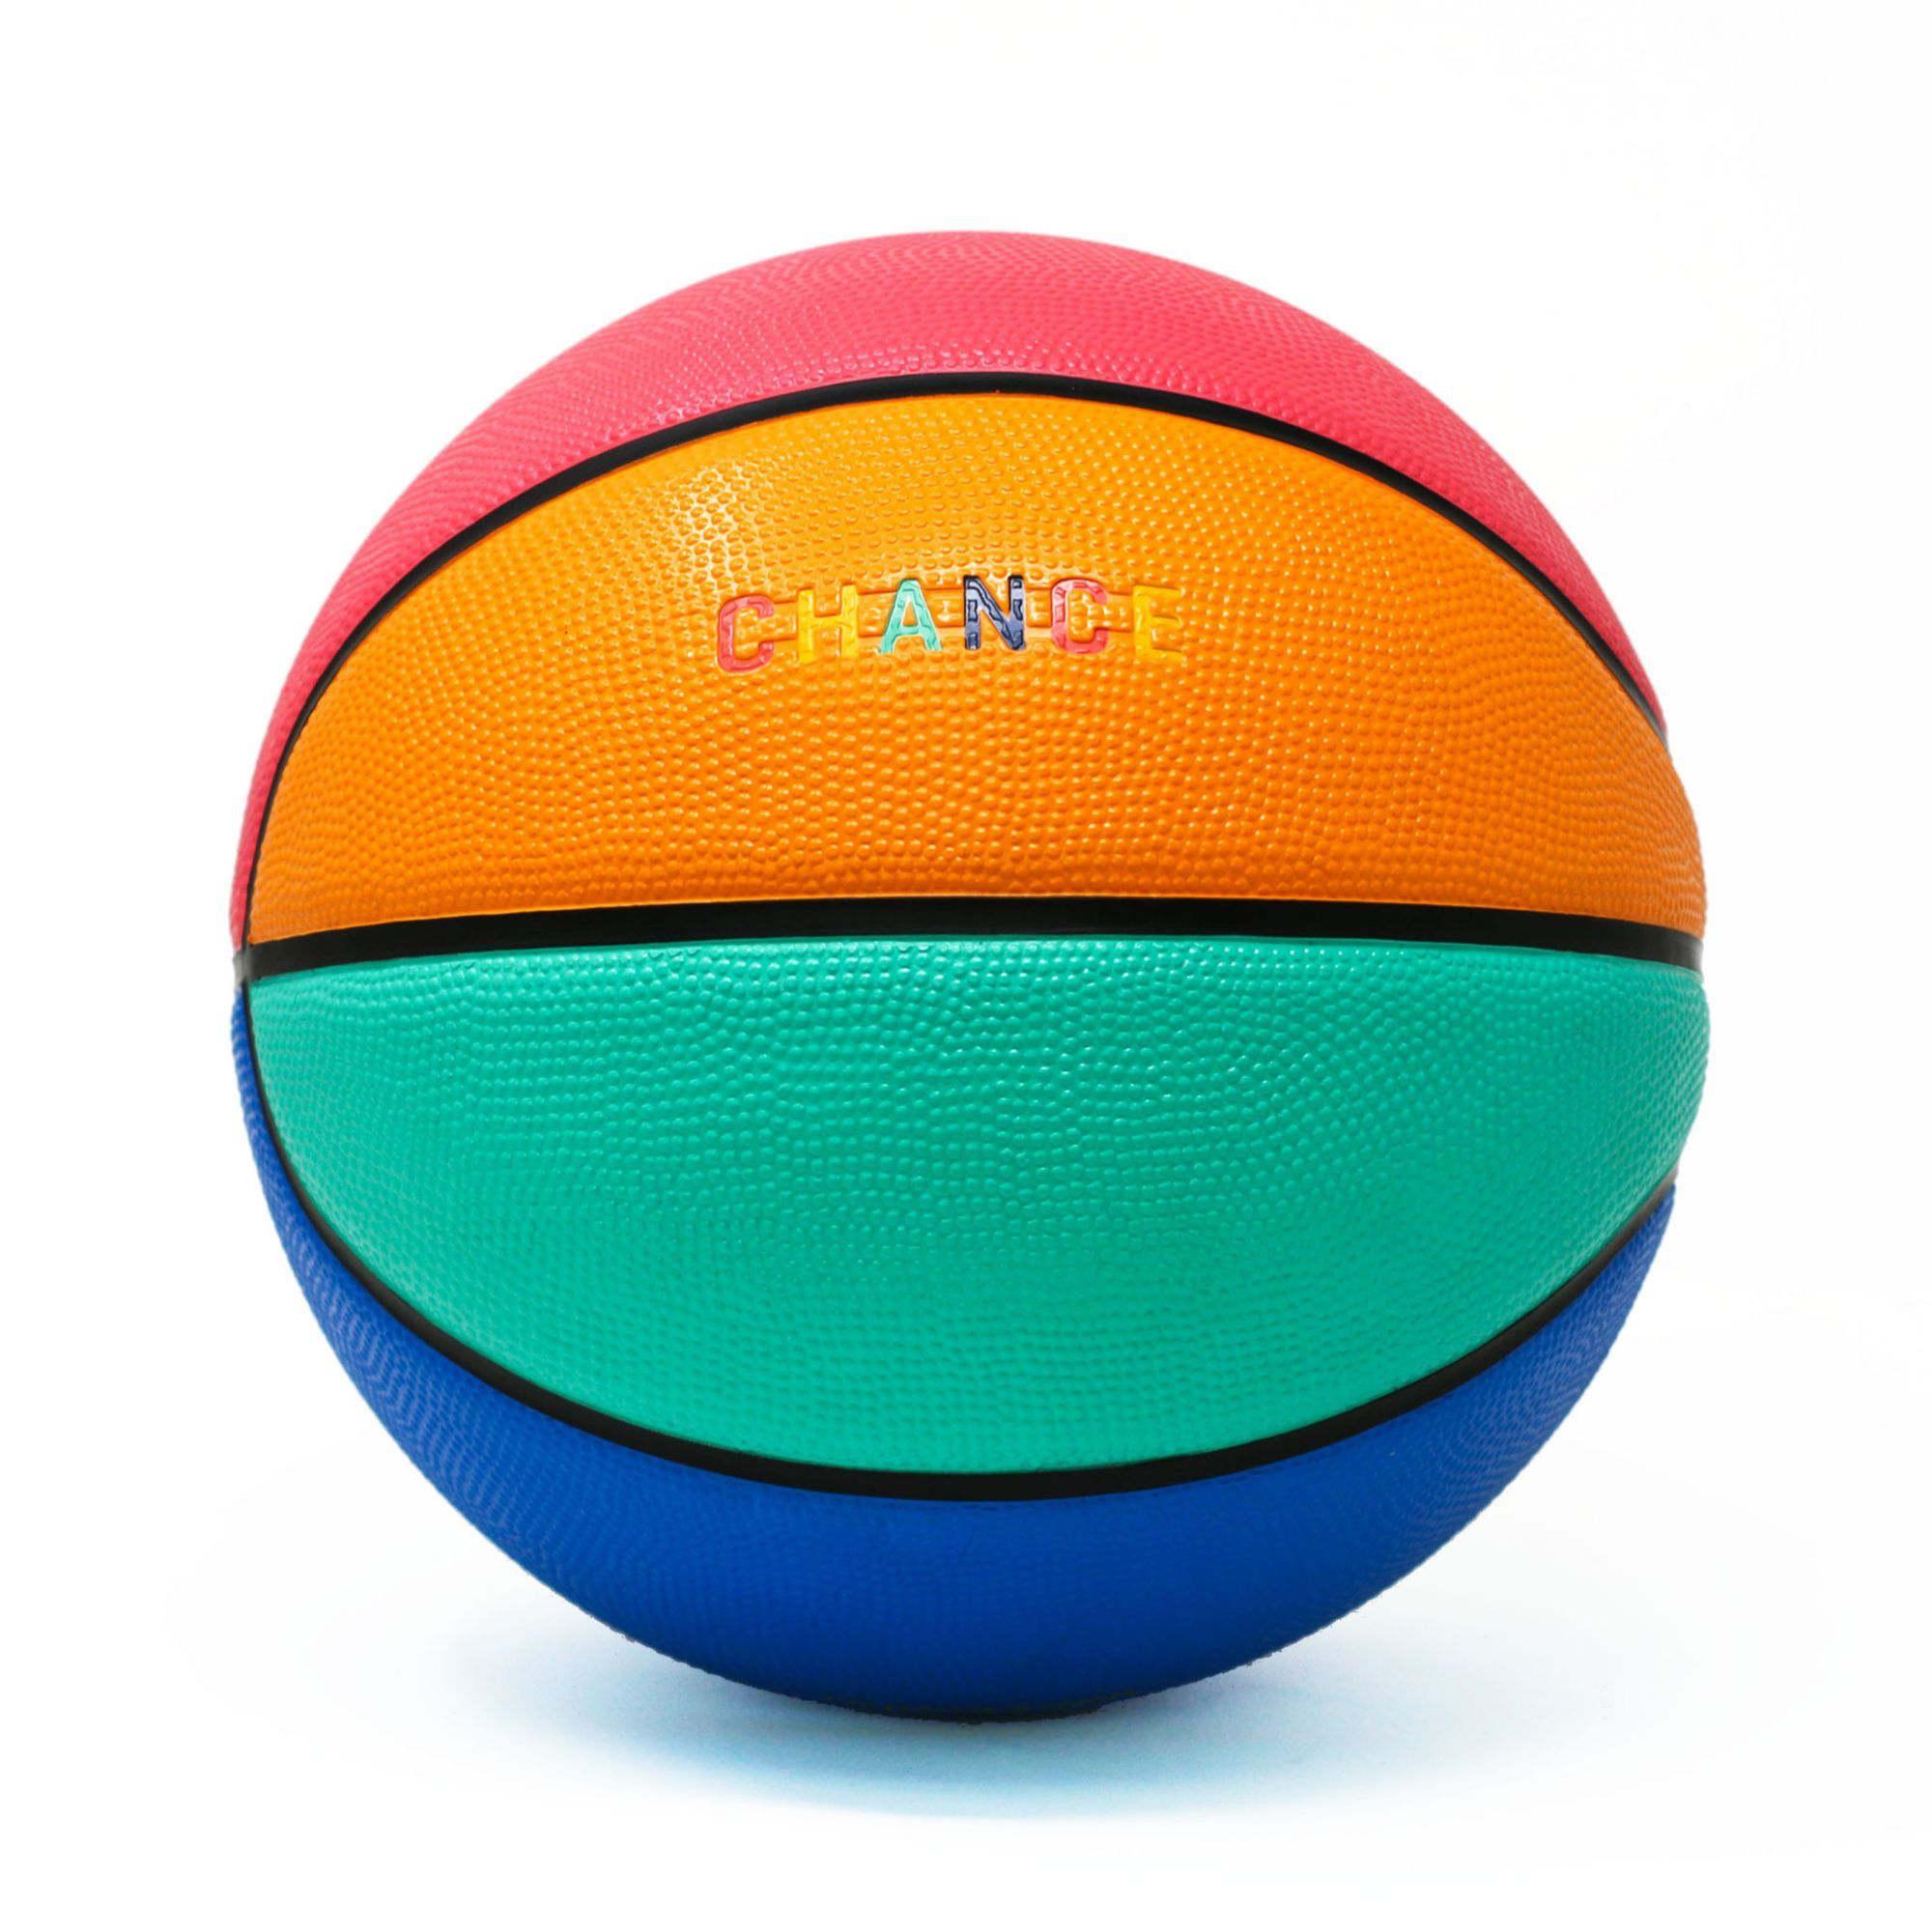 FEATURES: Official size and weight available for Men, Women and Kids For Outdoor play Premium rubber material provides a cushioned touch and durability Aggressive pebble pattern and deep channels offers the ultimate grip and control BASKETBALL SIZING CHART: 29.5